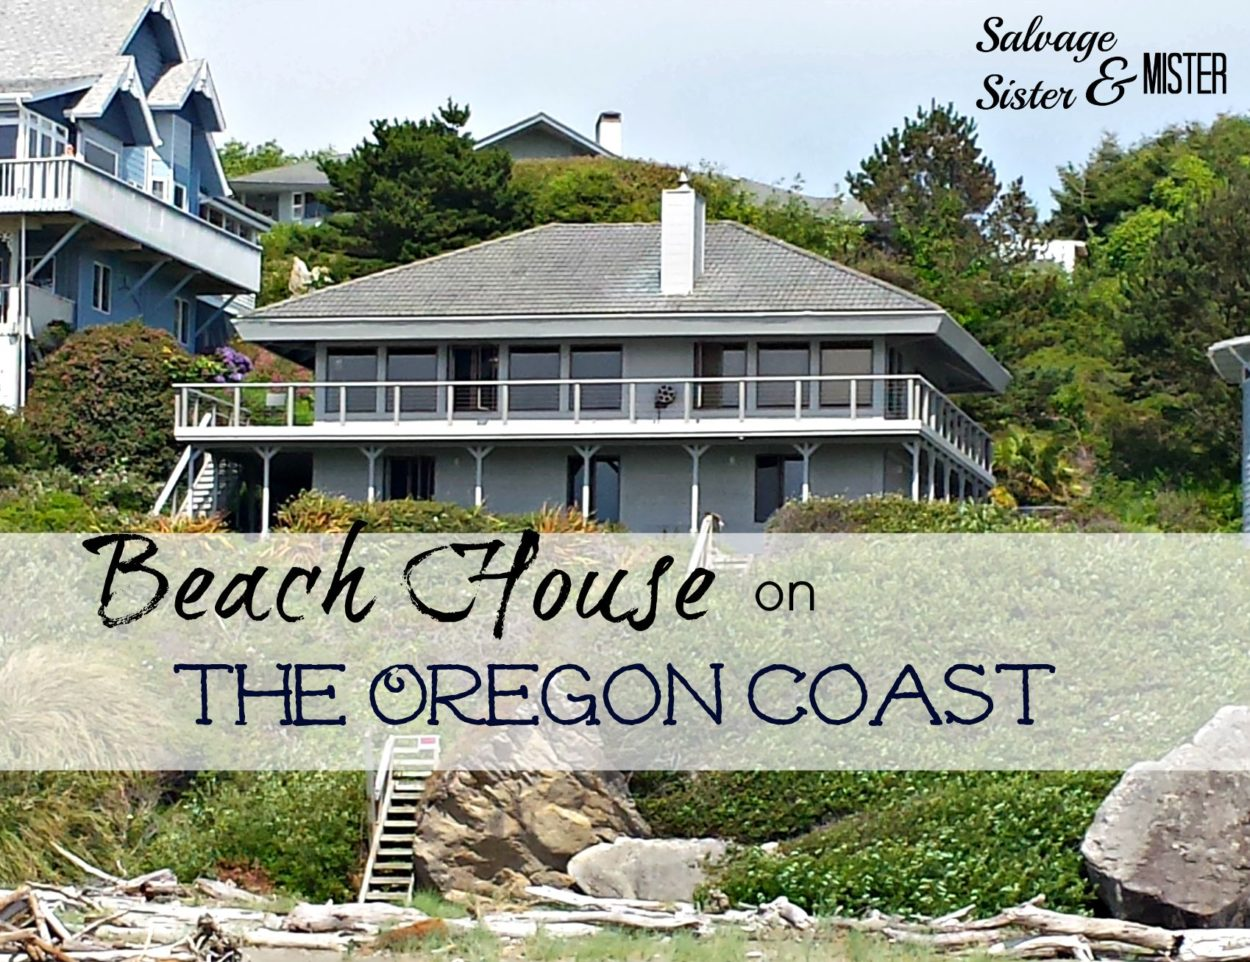 Beach House on the Oregon Coast...just like Home. www.salvagesisterandmister.com